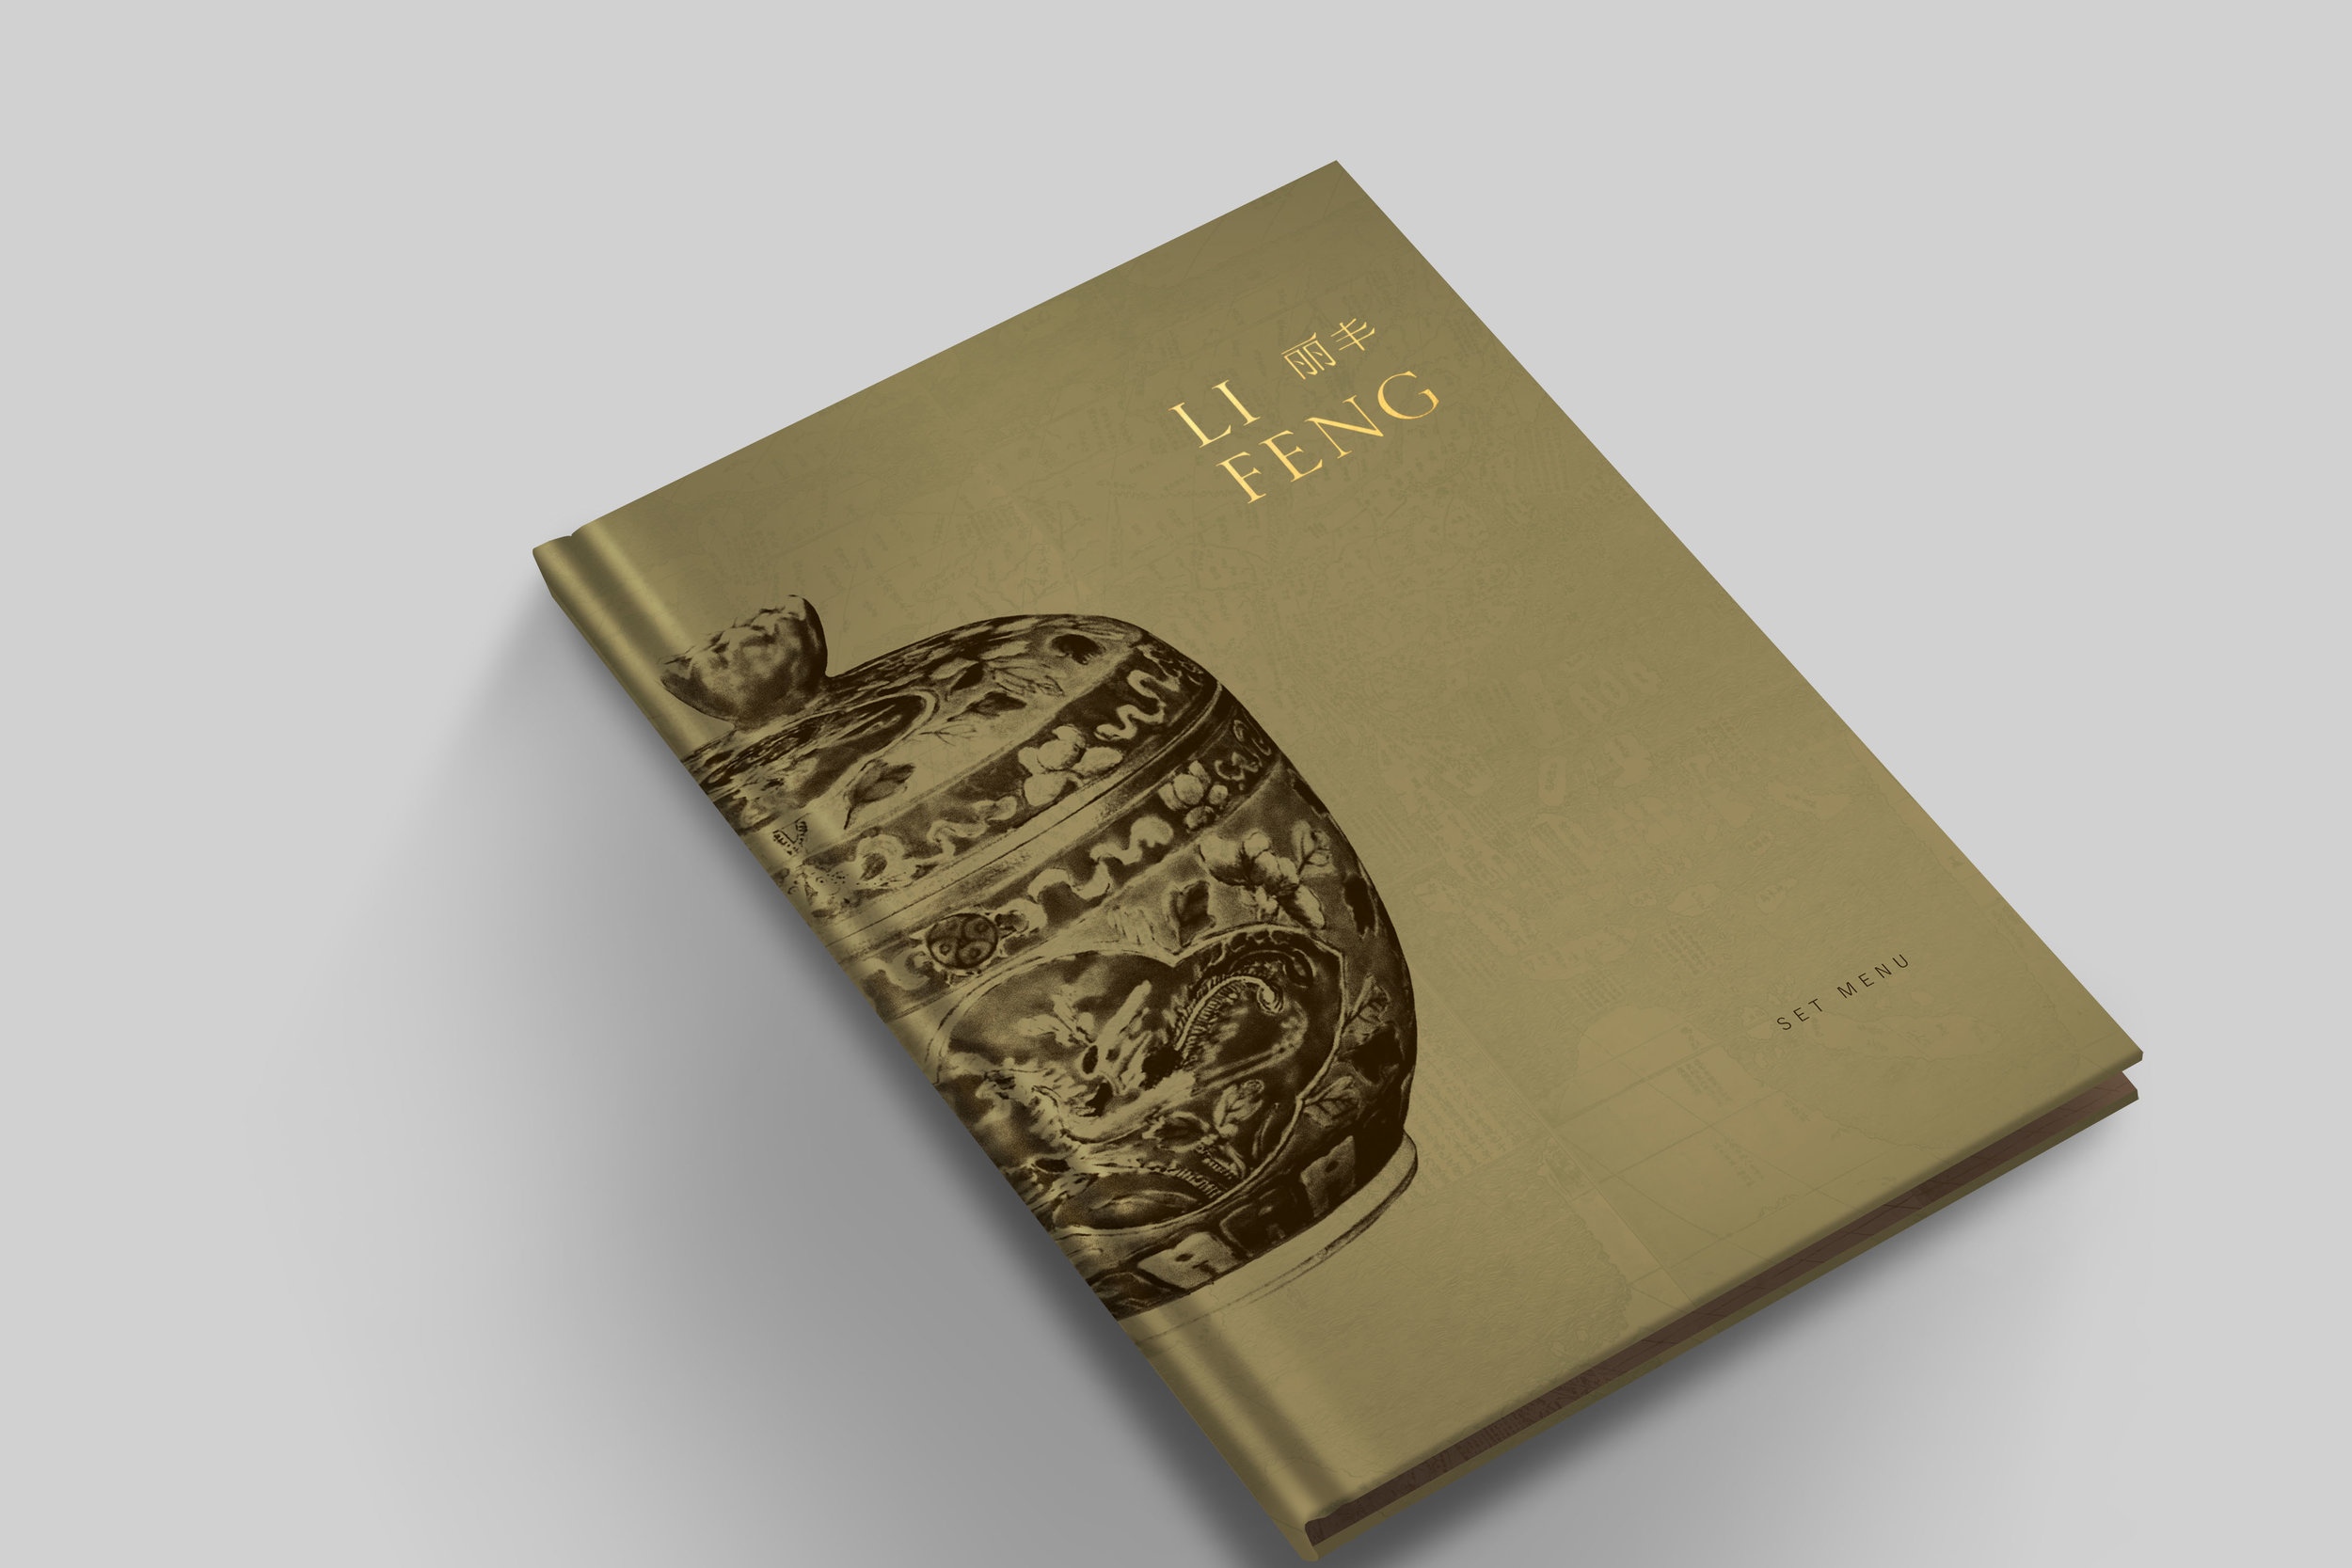 LiFeng Stationary Preview 08.jpg